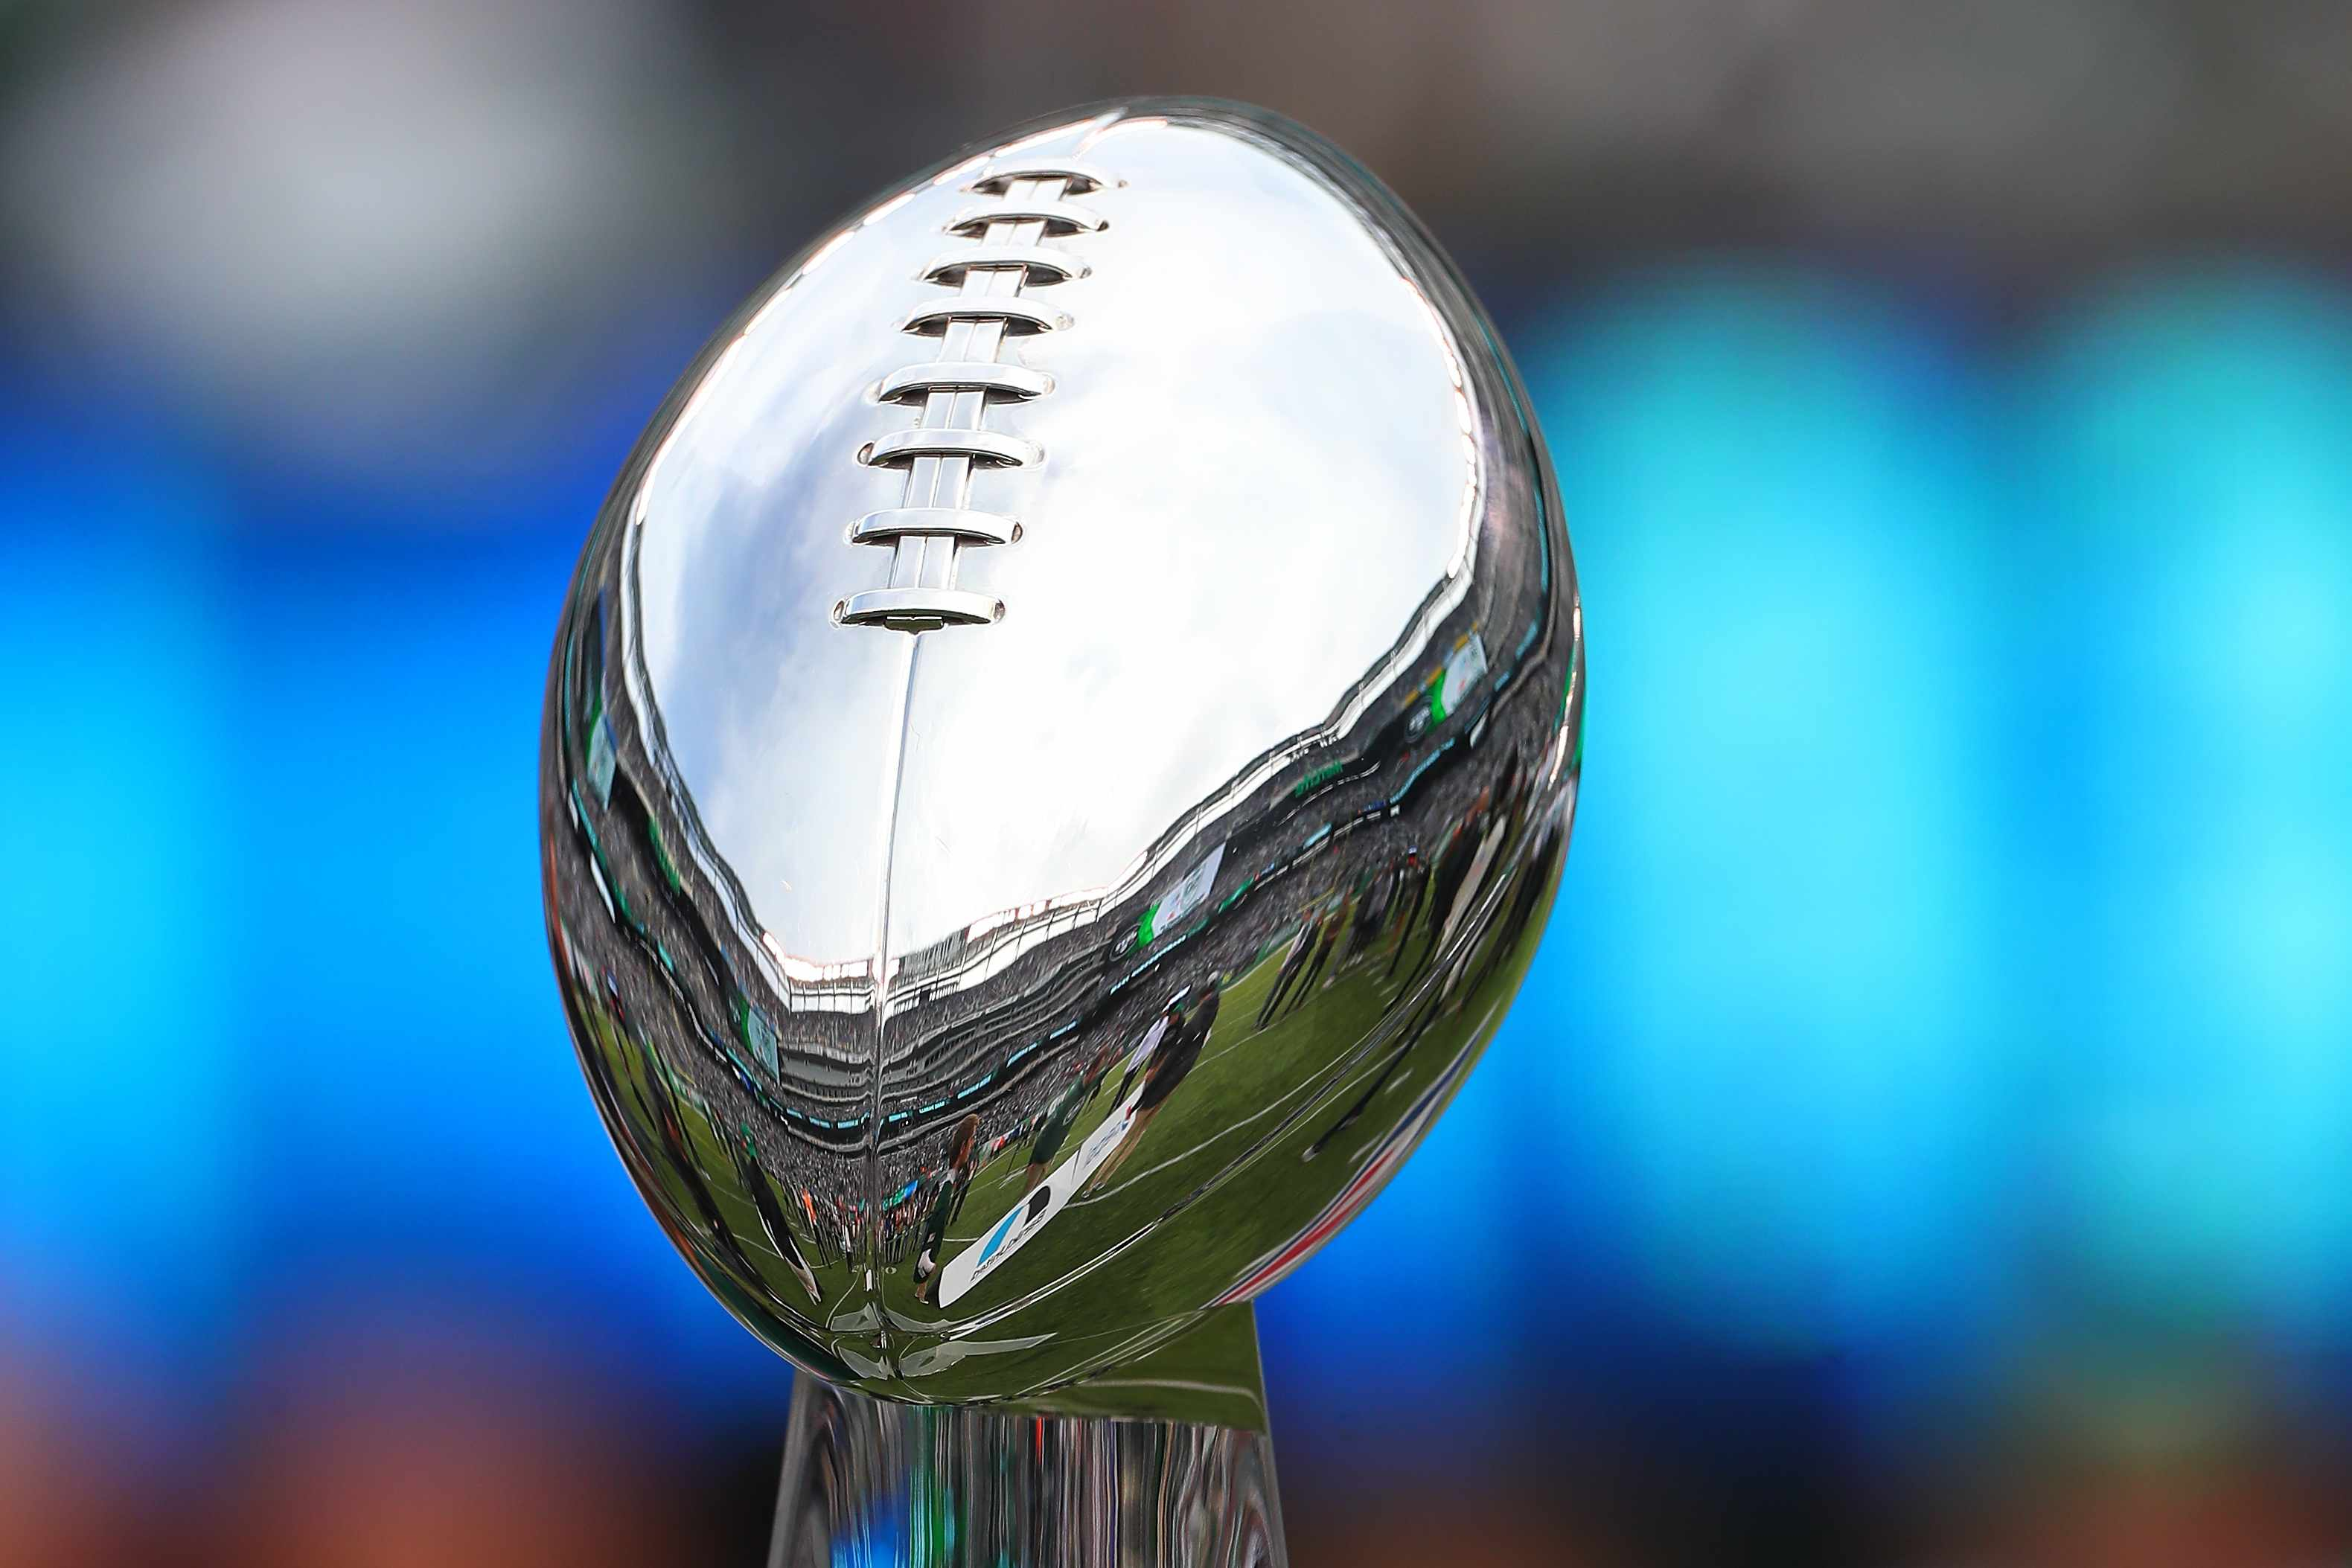 EAST RUTHERFORD, NJ - OCTOBER 14:  The SuperBowl III Vince Lombardi Trophy on displayc during halftime honoring the SuperBowl III Champion New York Jets during the National Football League Game between the New York Jets and the Indianapolis Colts on October 14, 2018 at MetLife Stadium in East Rutherford, NJ.  (Photo by Rich Graessle/Icon Sportswire via Getty Images)